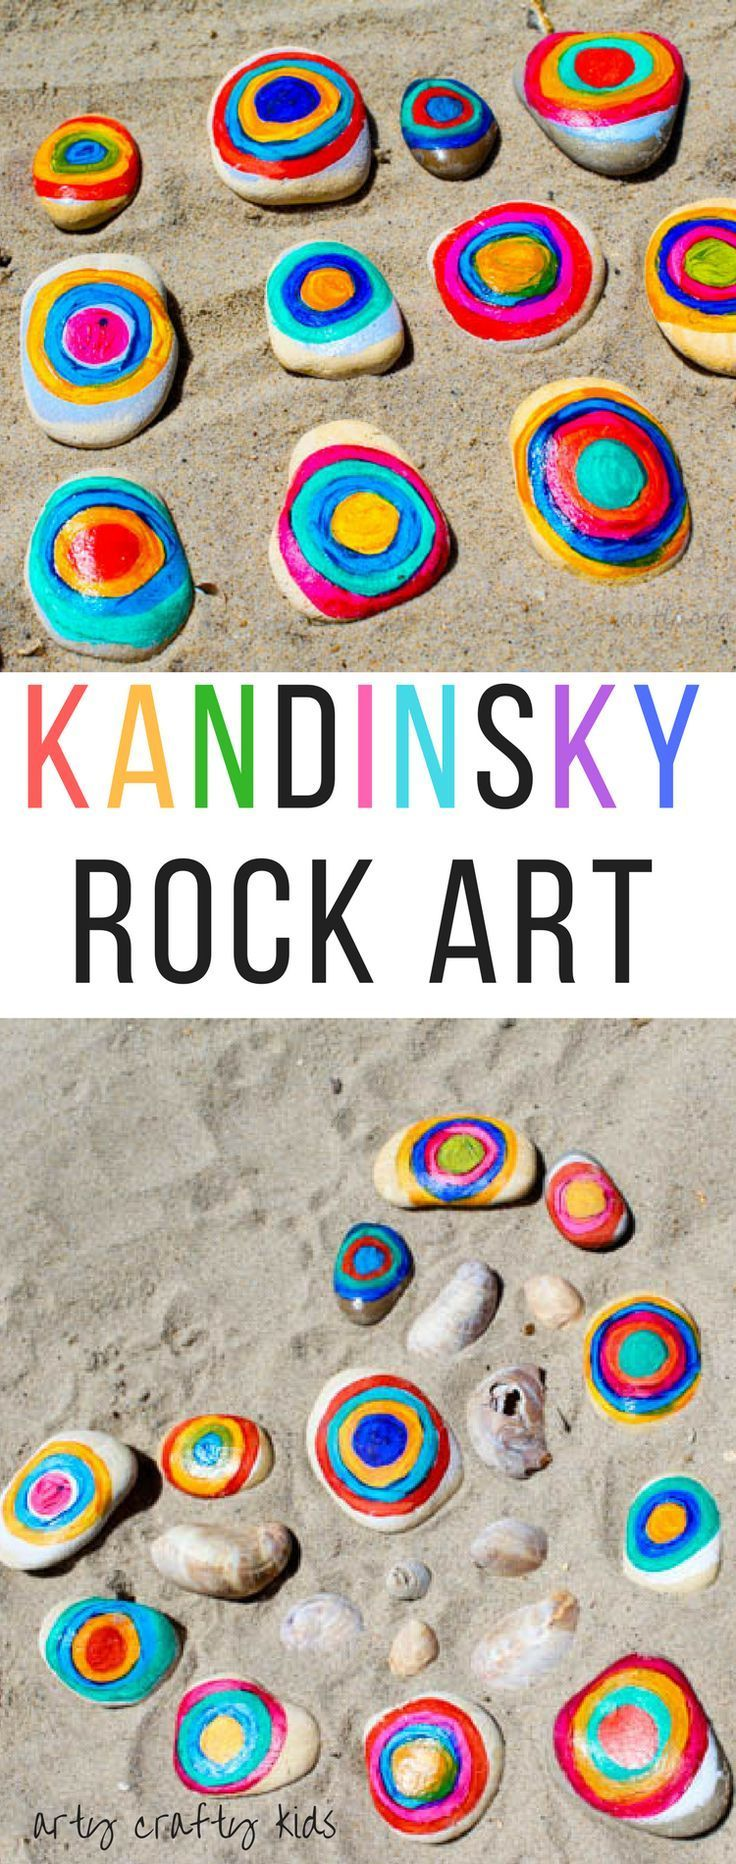 Arty Crafty Kids  Art  Kandinsky Inspired Rock Art  A fun interpretation of Kandinskys famous conecentric circles A great way for kids to learn about famous artists and c...